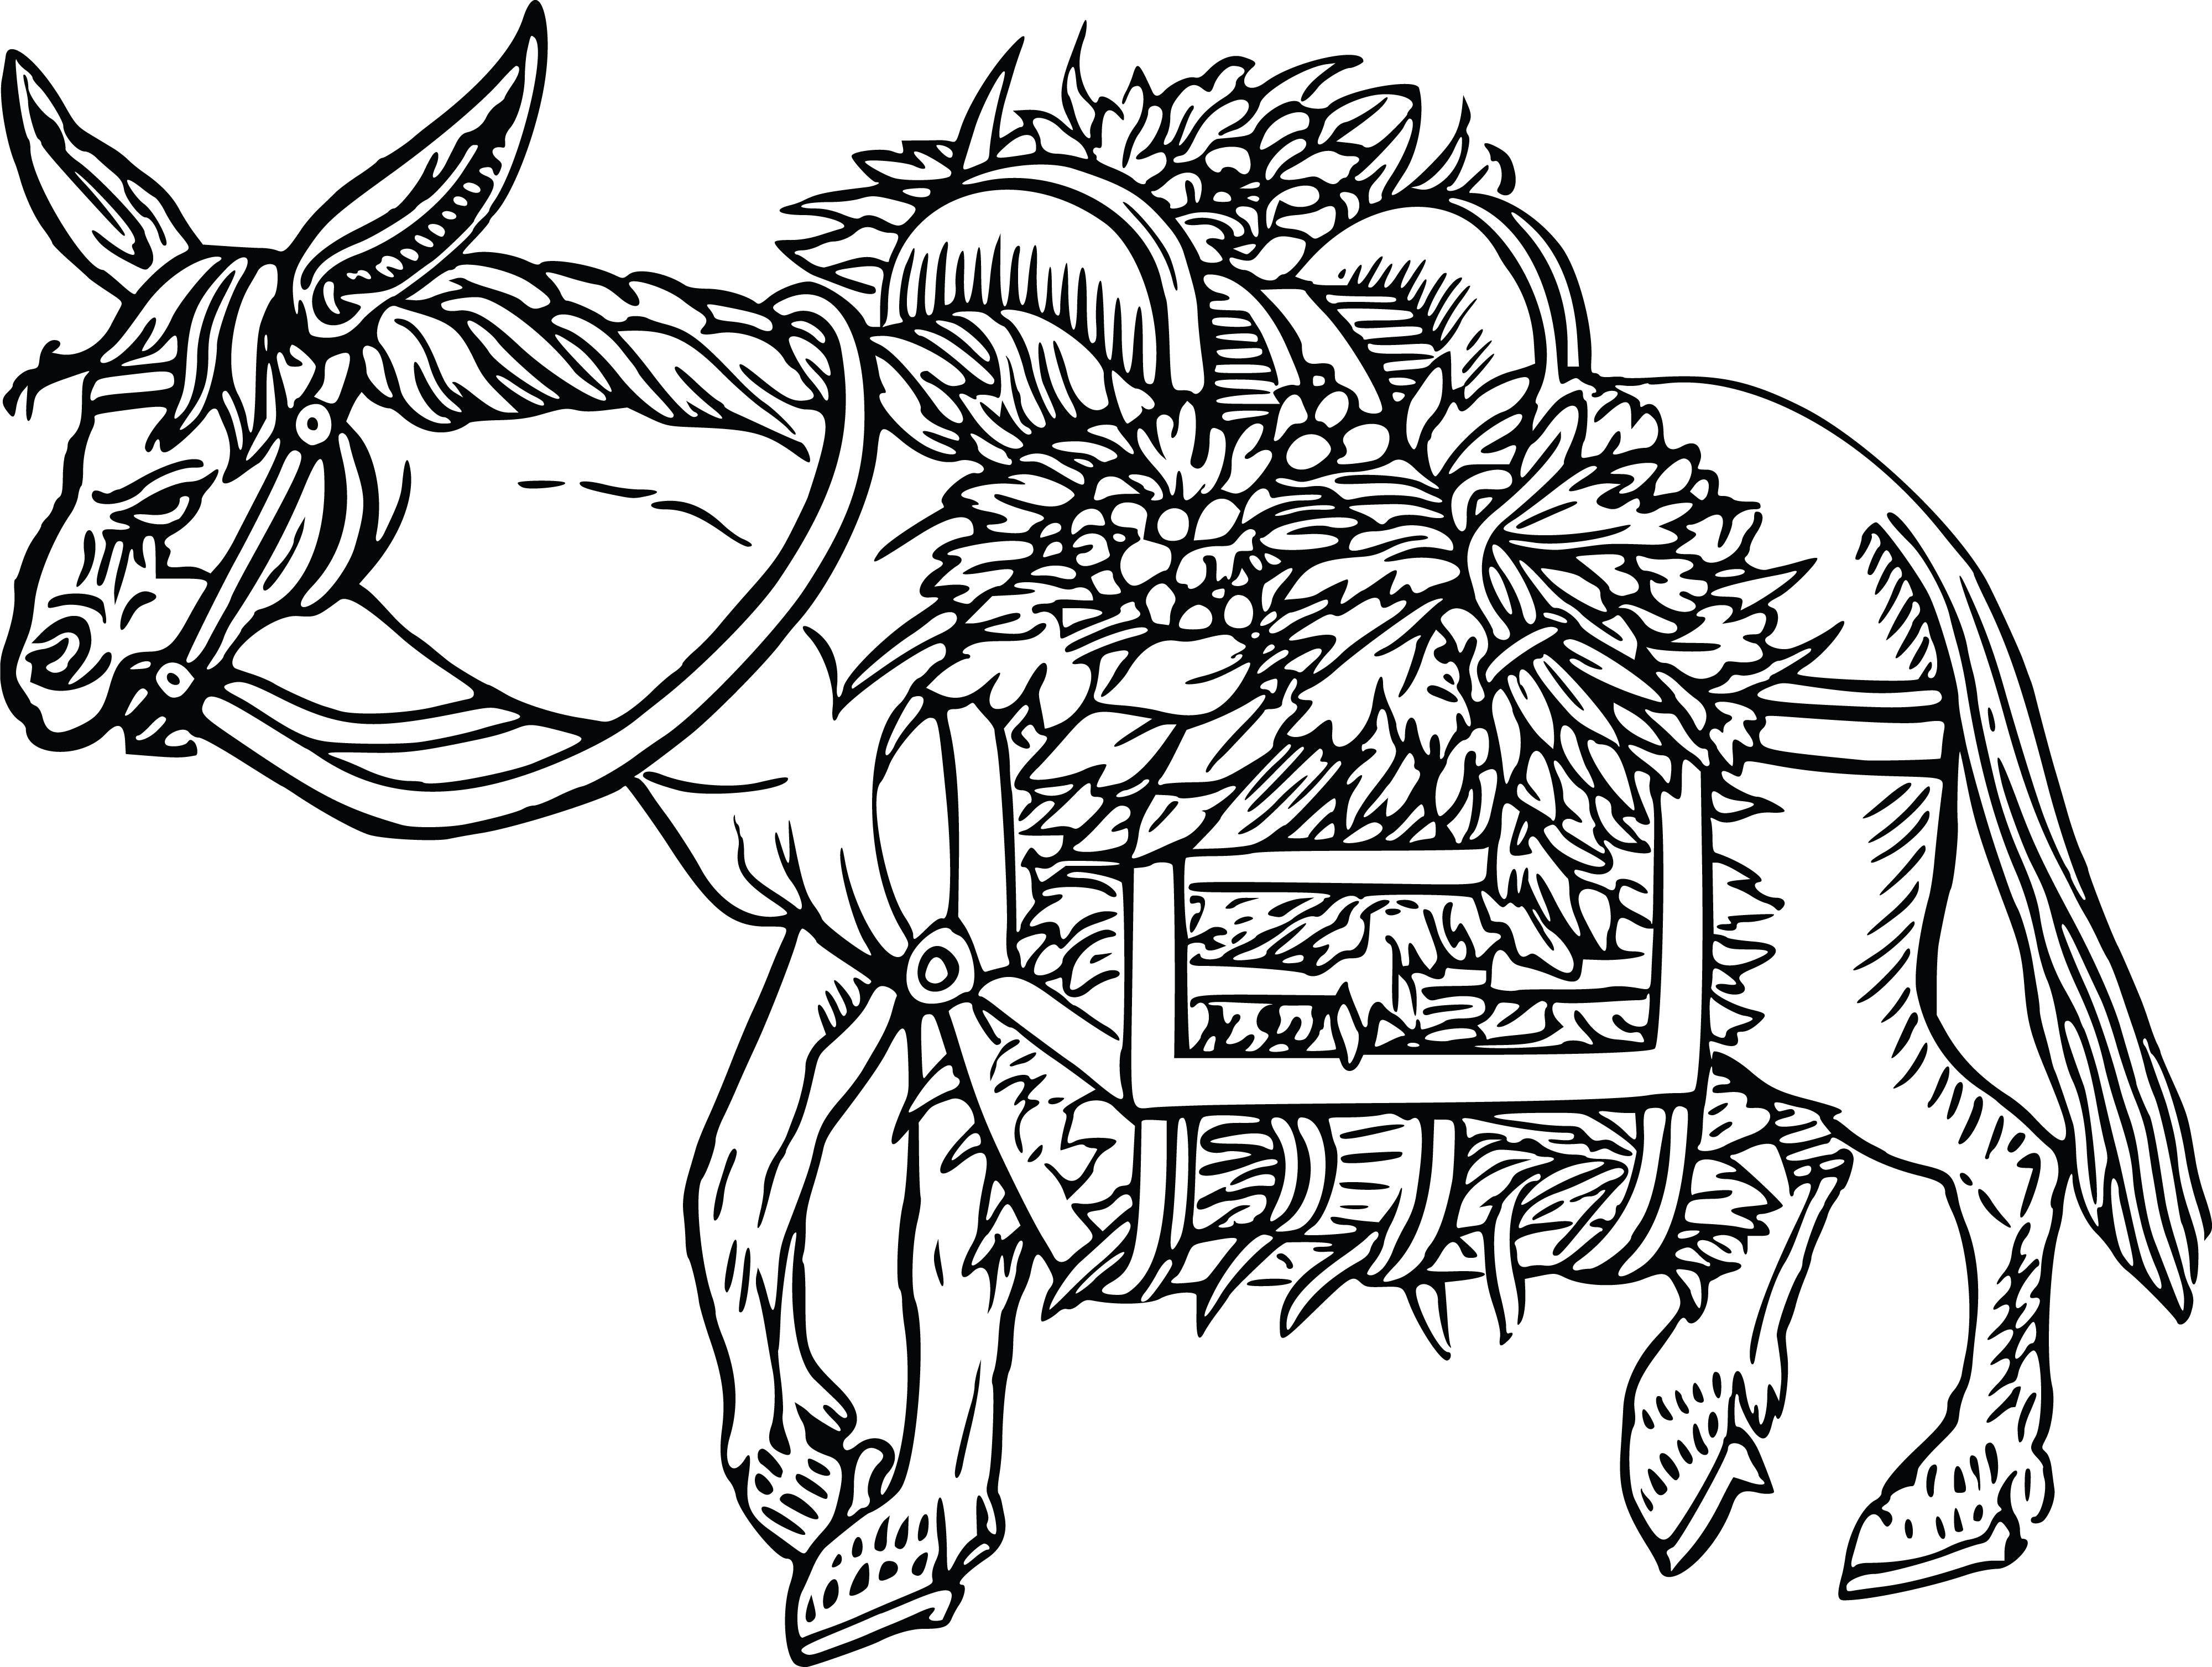 4th Of July Bbq Yard Sign likewise Black Silhouette Of A Womans Profiled Face On White 80430 likewise Elmer Elephant Clipart Clipartxtras Clip Art Coloring Page Republican besides In Almost Every State The Poor Pay More Of Their In e In Taxes Than The Rich furthermore Burro Ipn. on republican vector graphics